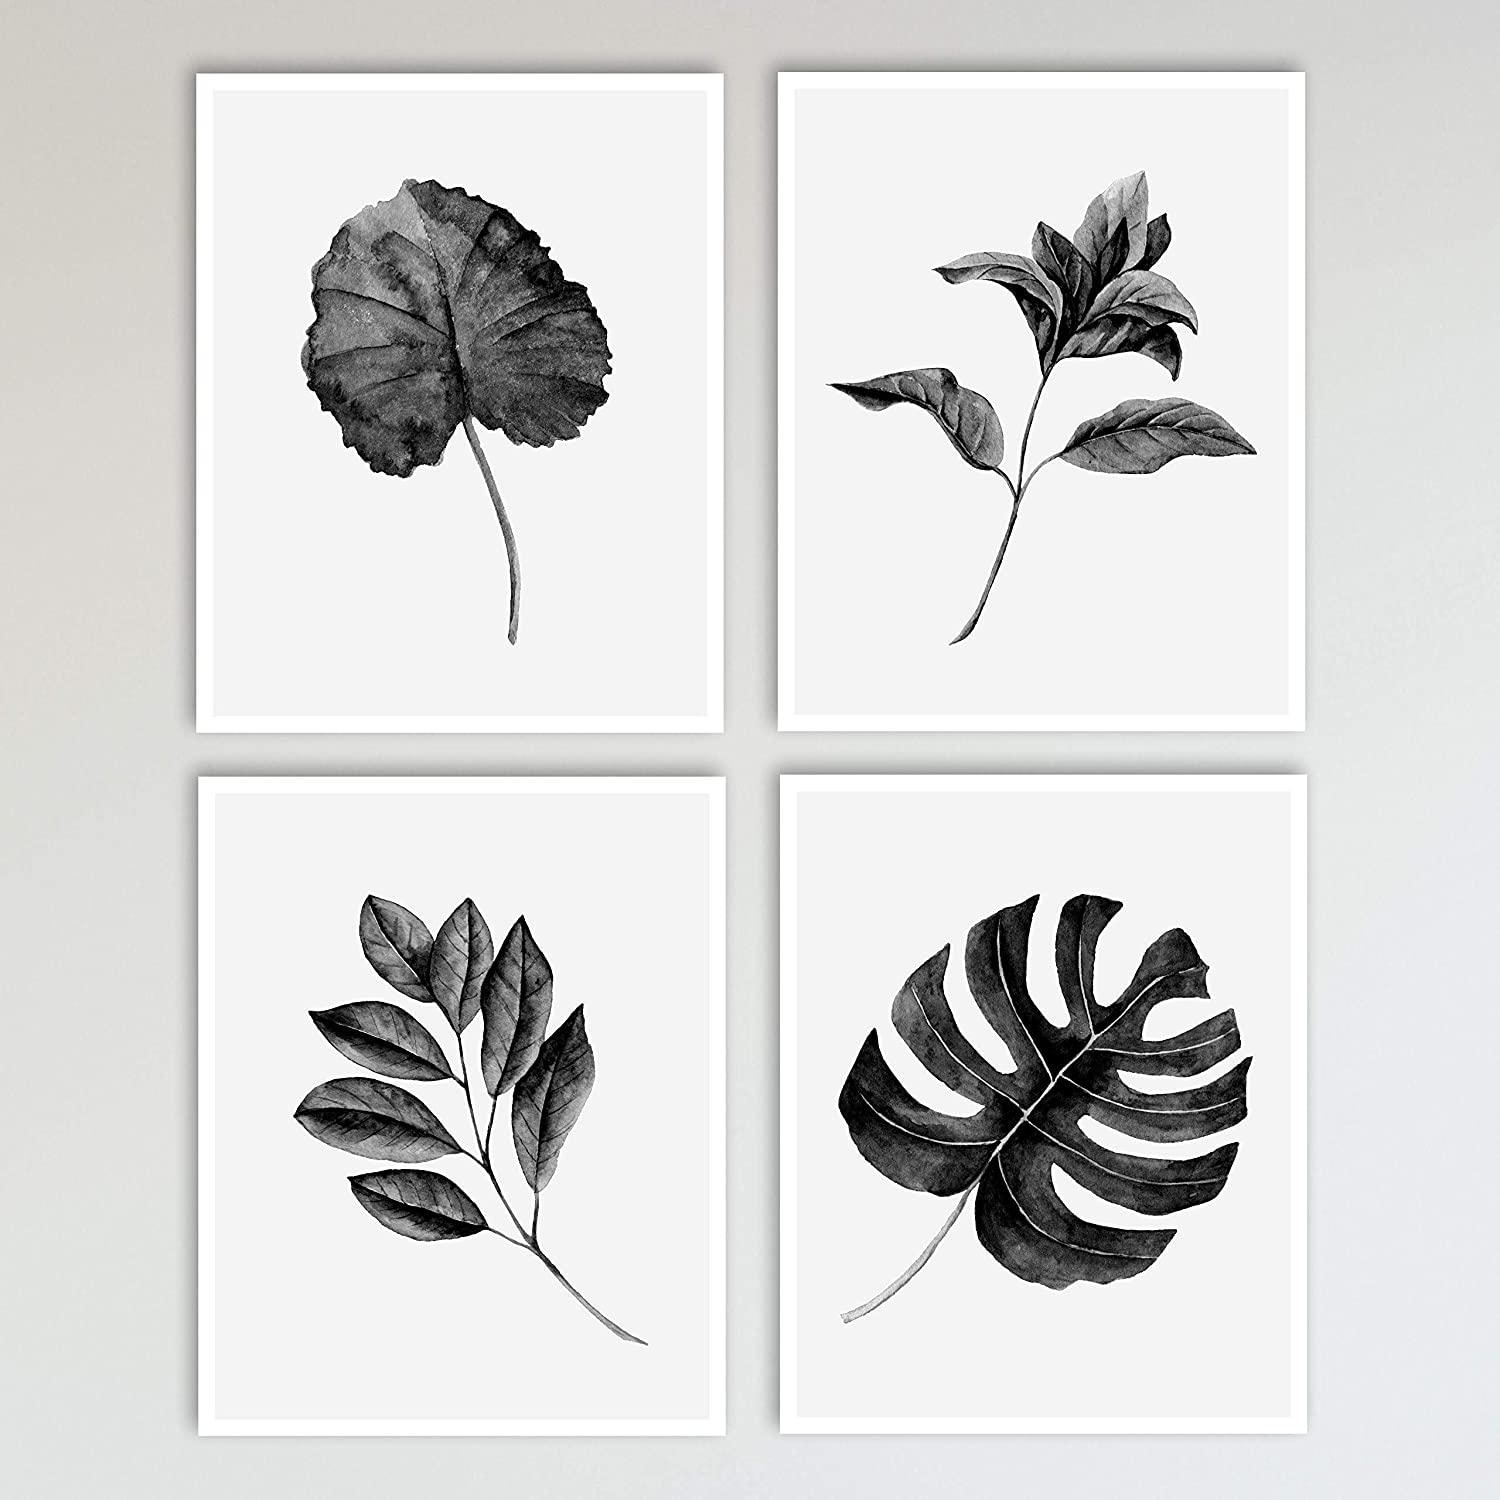 Amazon Com Tropical Leaves Botanicals Wall Decor Art Prints 4 Piece Set Black And White Boho Leaf Print 8 X 10 Inches Each Unframed Handmade Black and white jungle landscape silhouette animation loop. tropical leaves botanicals wall decor art prints 4 piece set black and white boho leaf print 8 x 10 inches each unframed